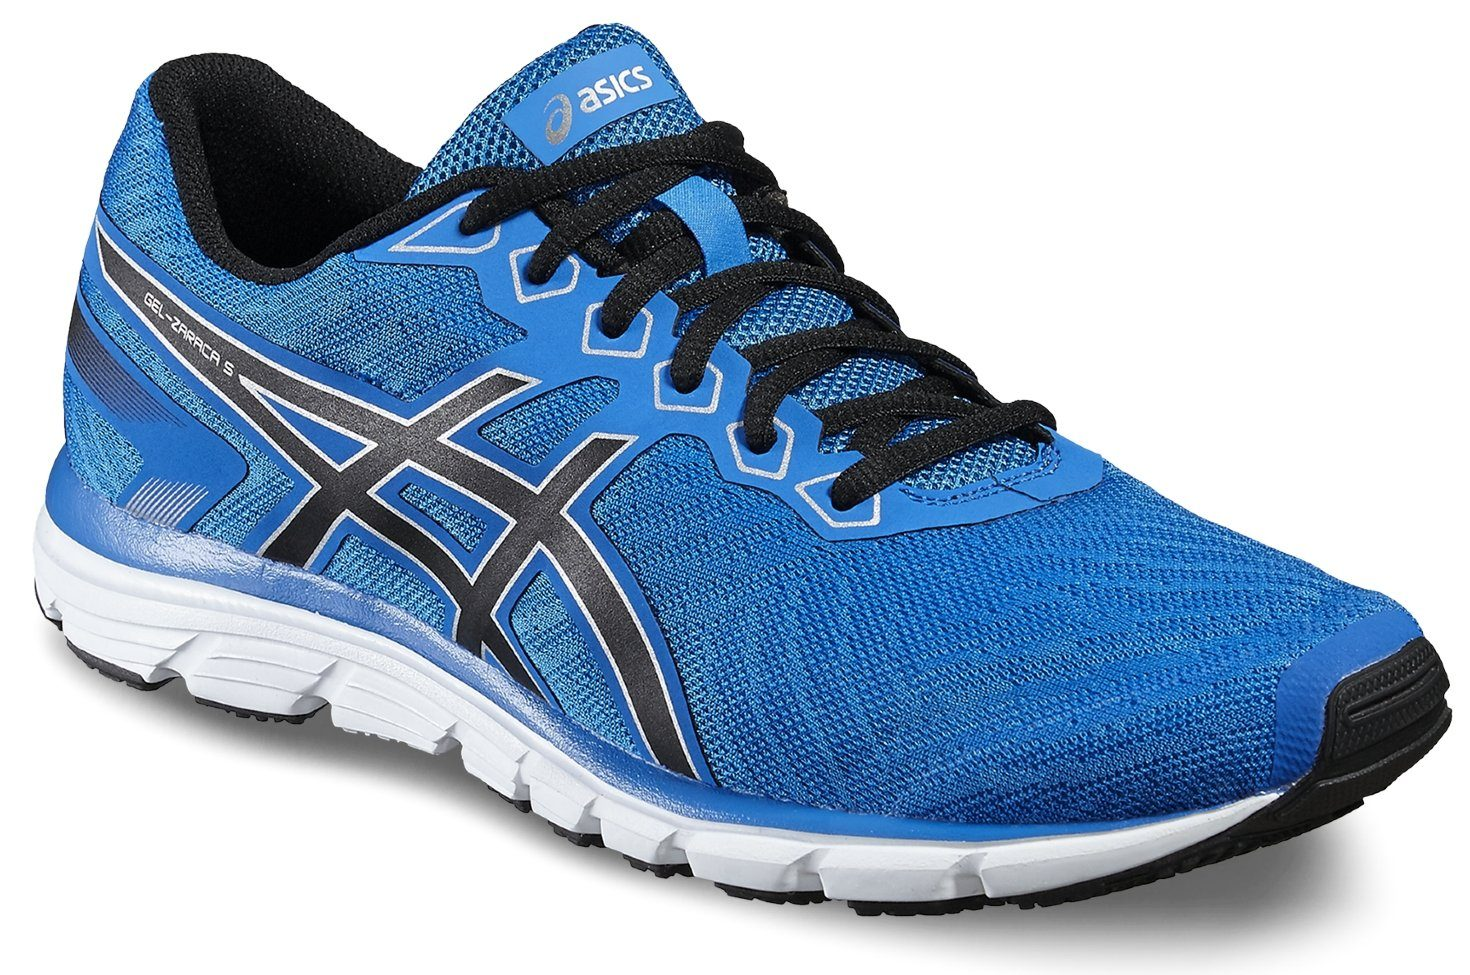 Asics Runningschuh »Gel-Zaraca 5 Shoe Men«